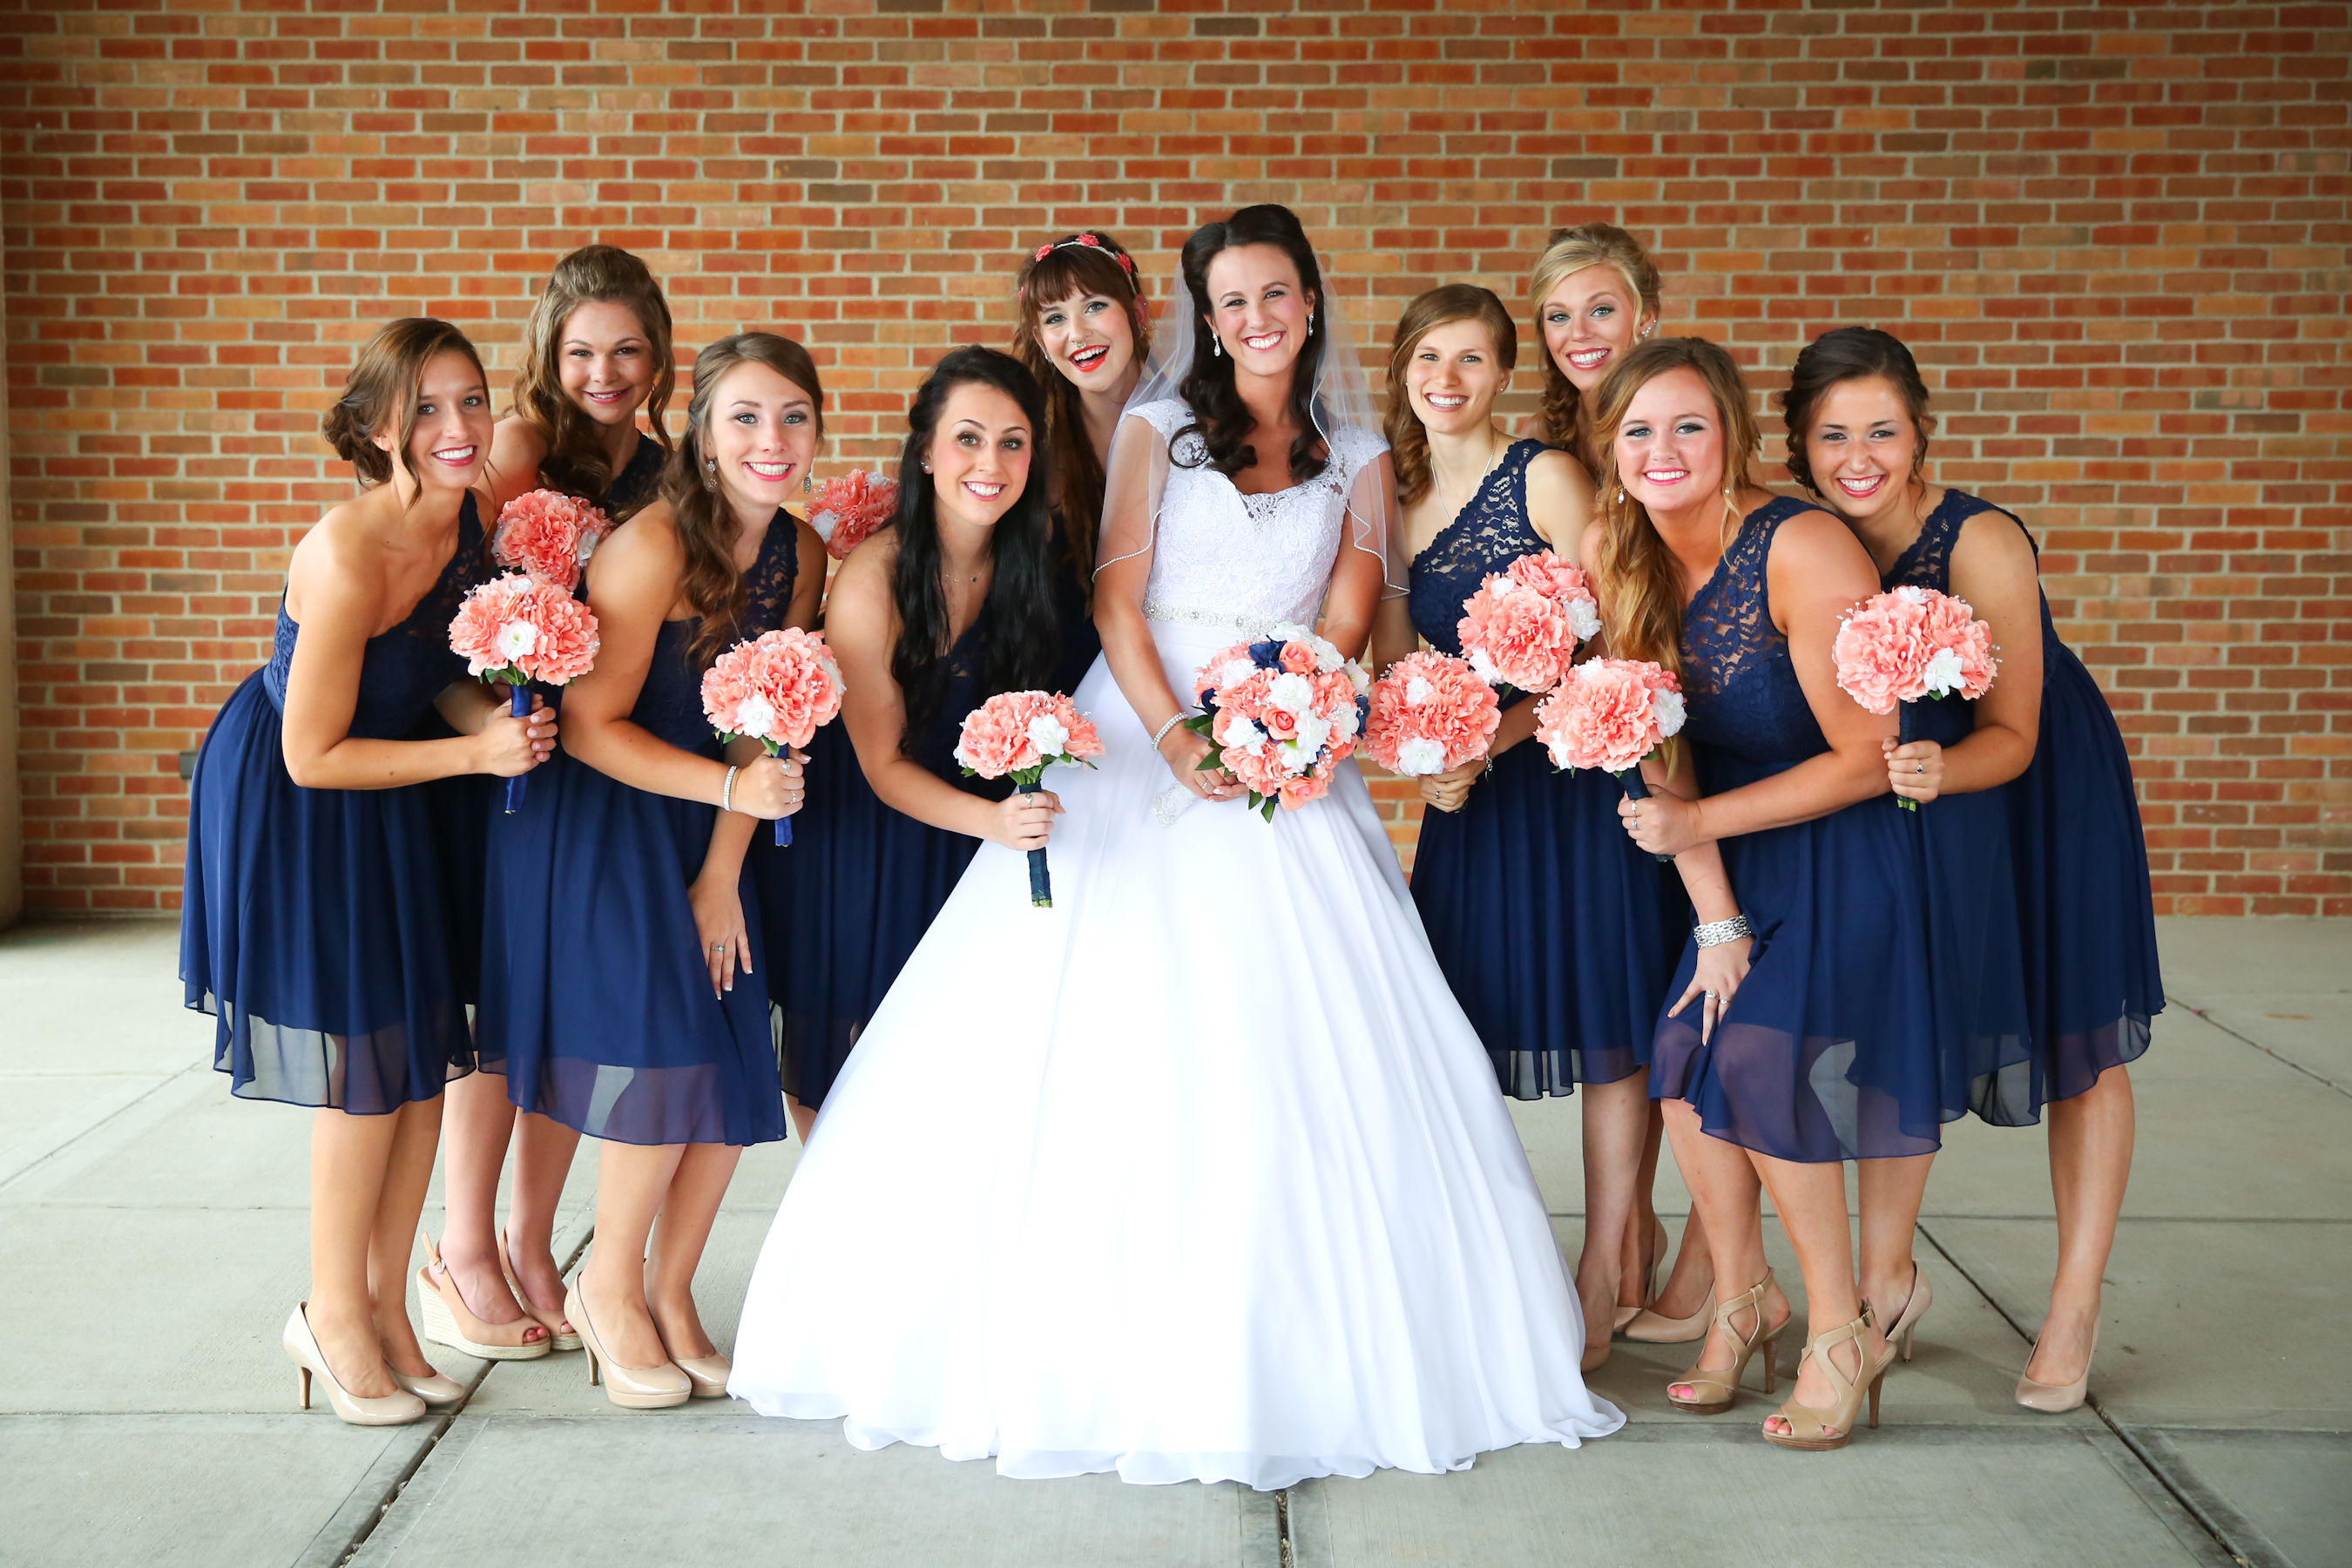 Bridesmaids Worthington Christian